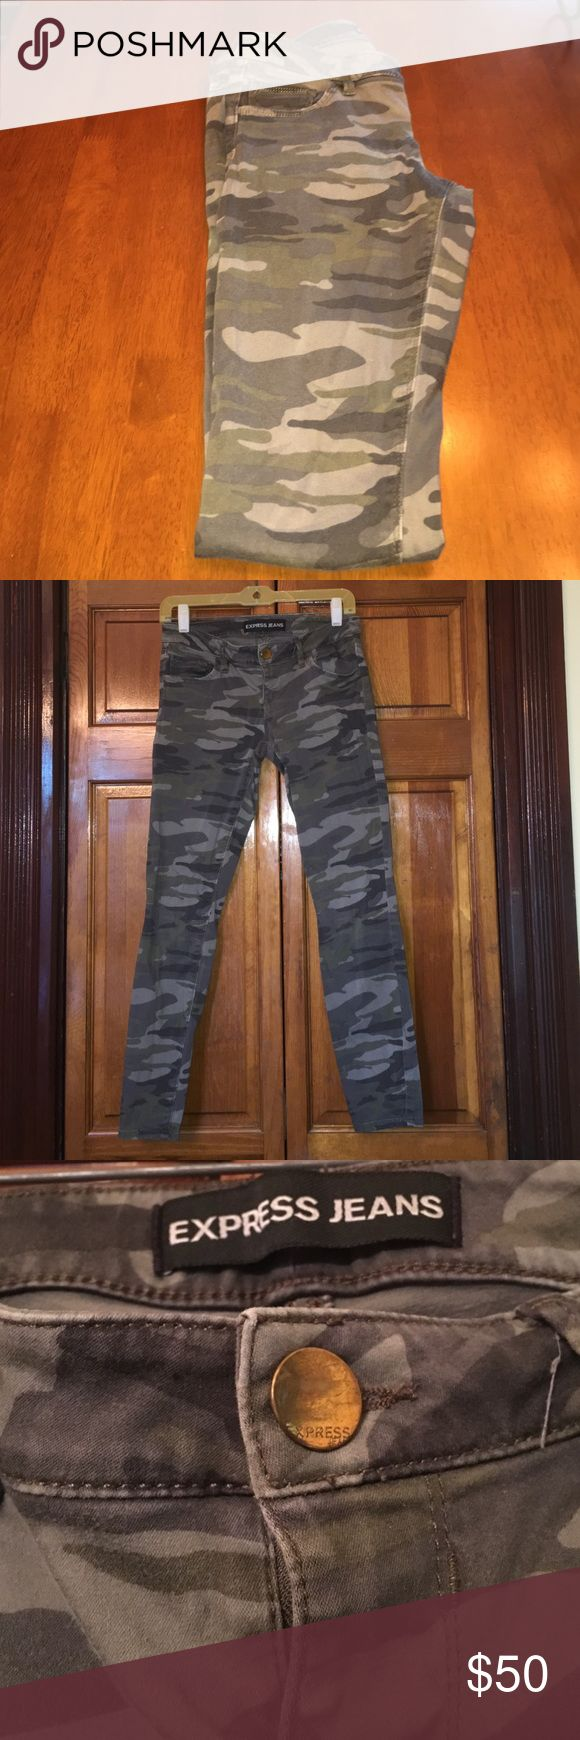 Express camo skinny jeans Express camo skinny jeans, size 2. Only worn a few times. Express Jeans Skinny